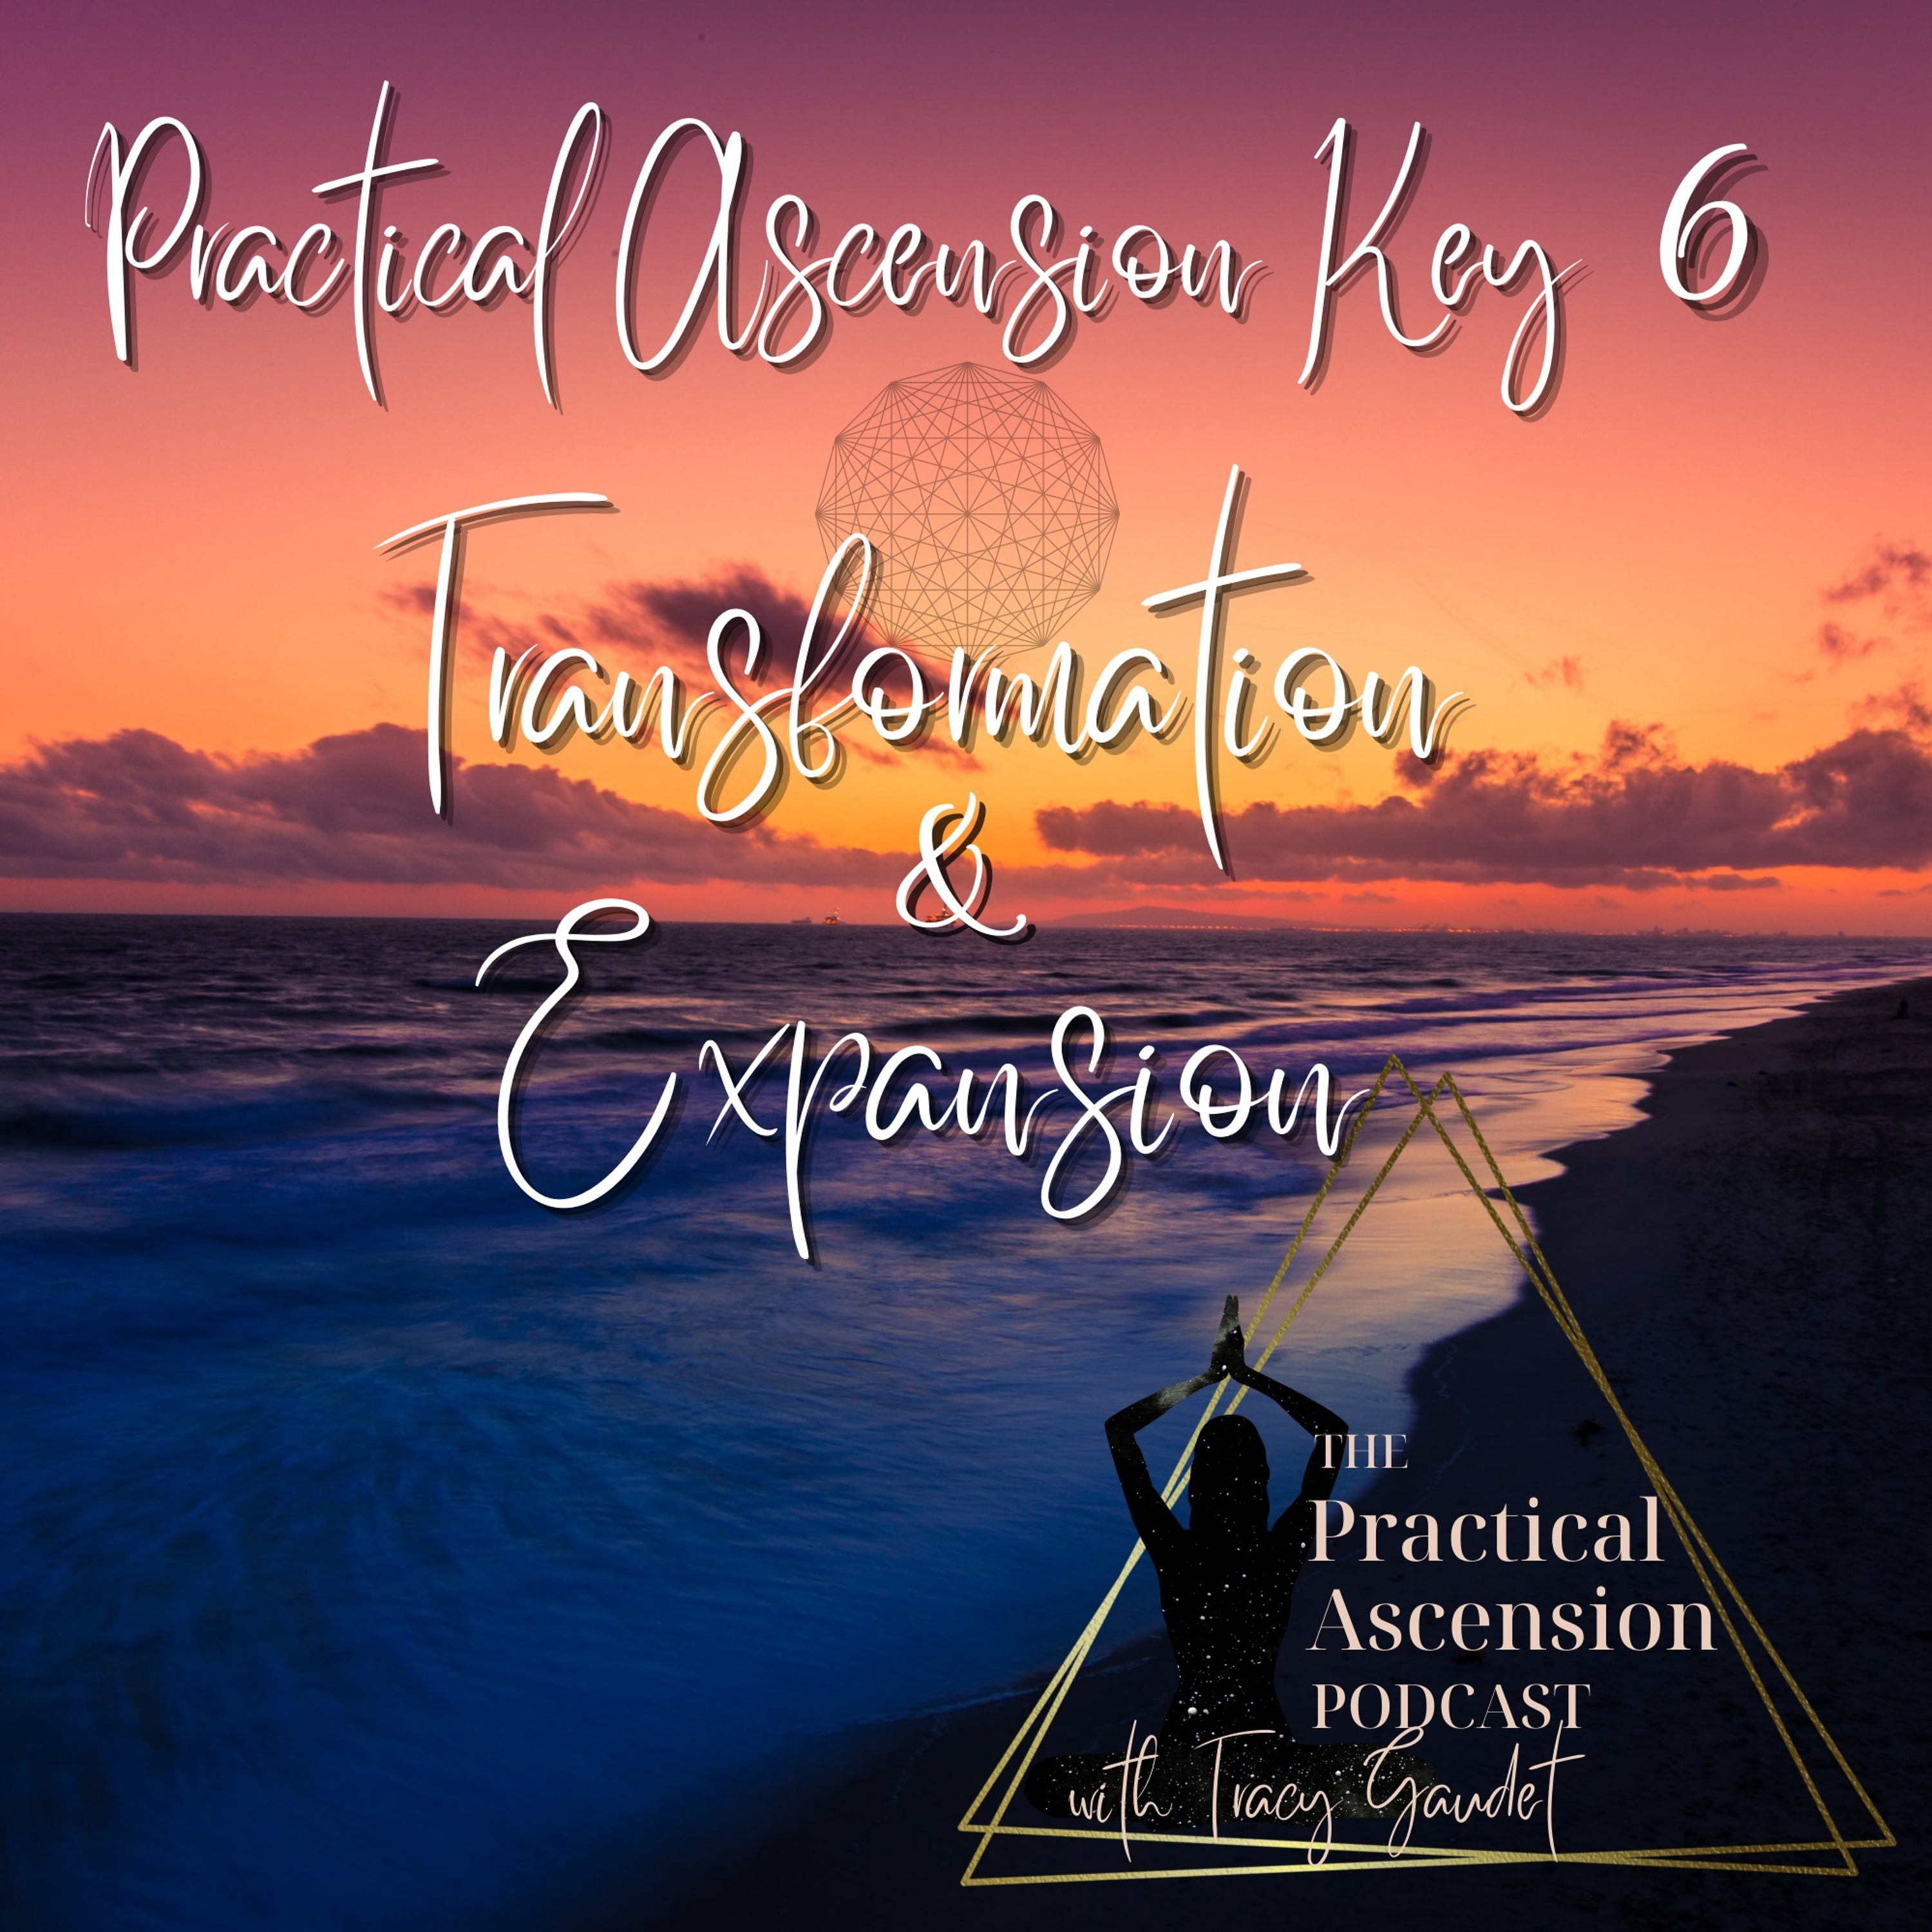 Practical Ascension Key 6 Transformation And Expansion